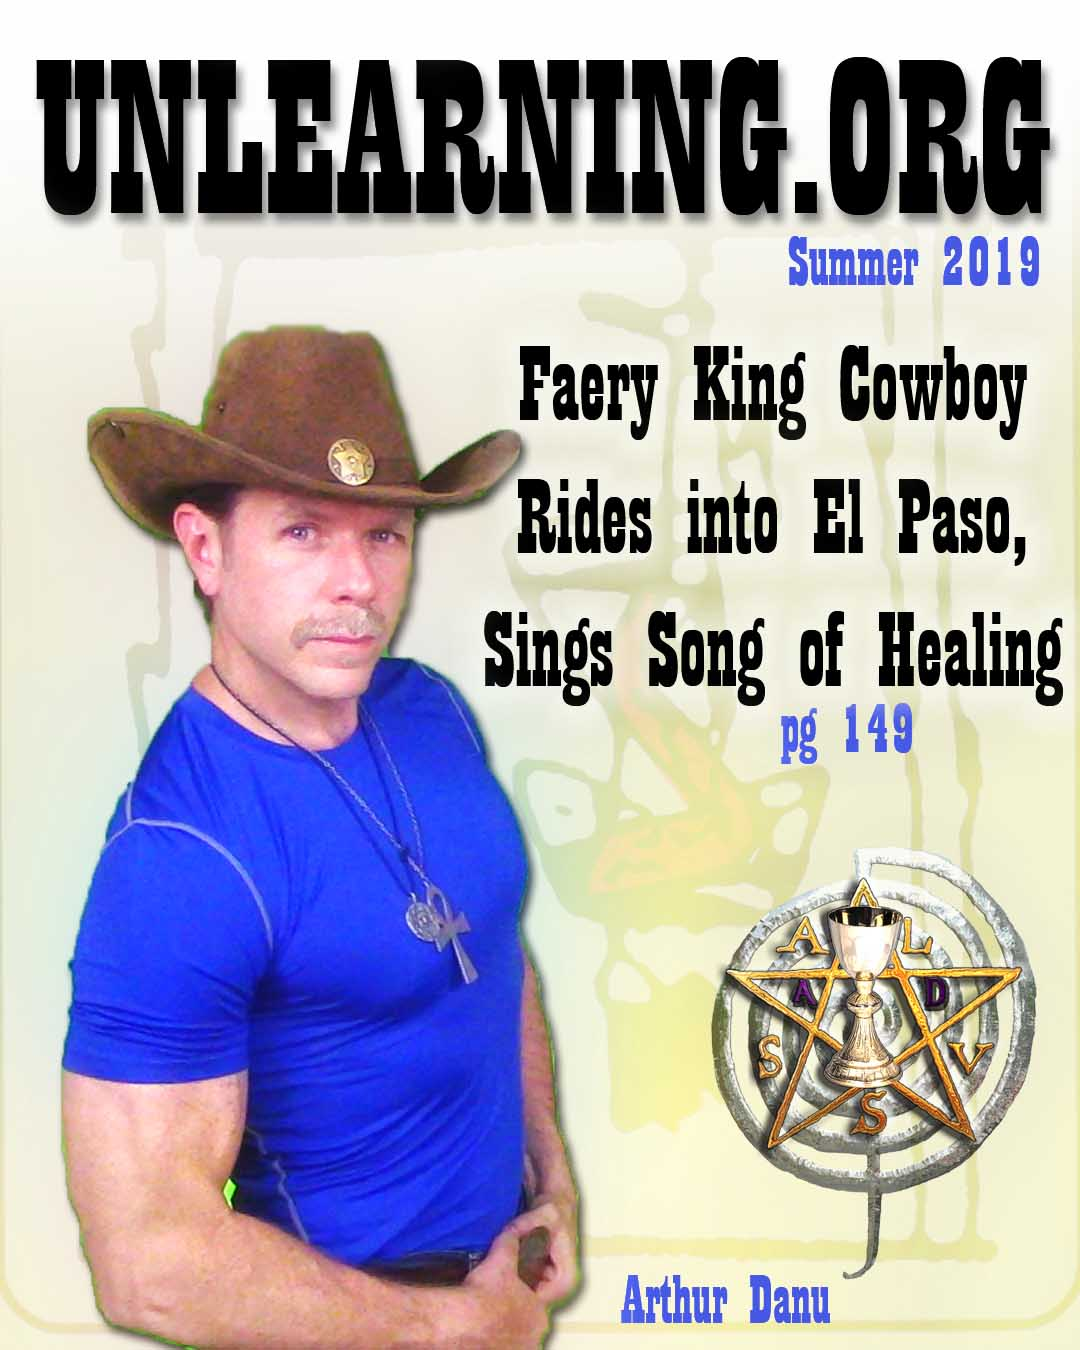 FAERY KING COWBOY RIDES INTO EL PASO, SINGS SONG OF HEALING